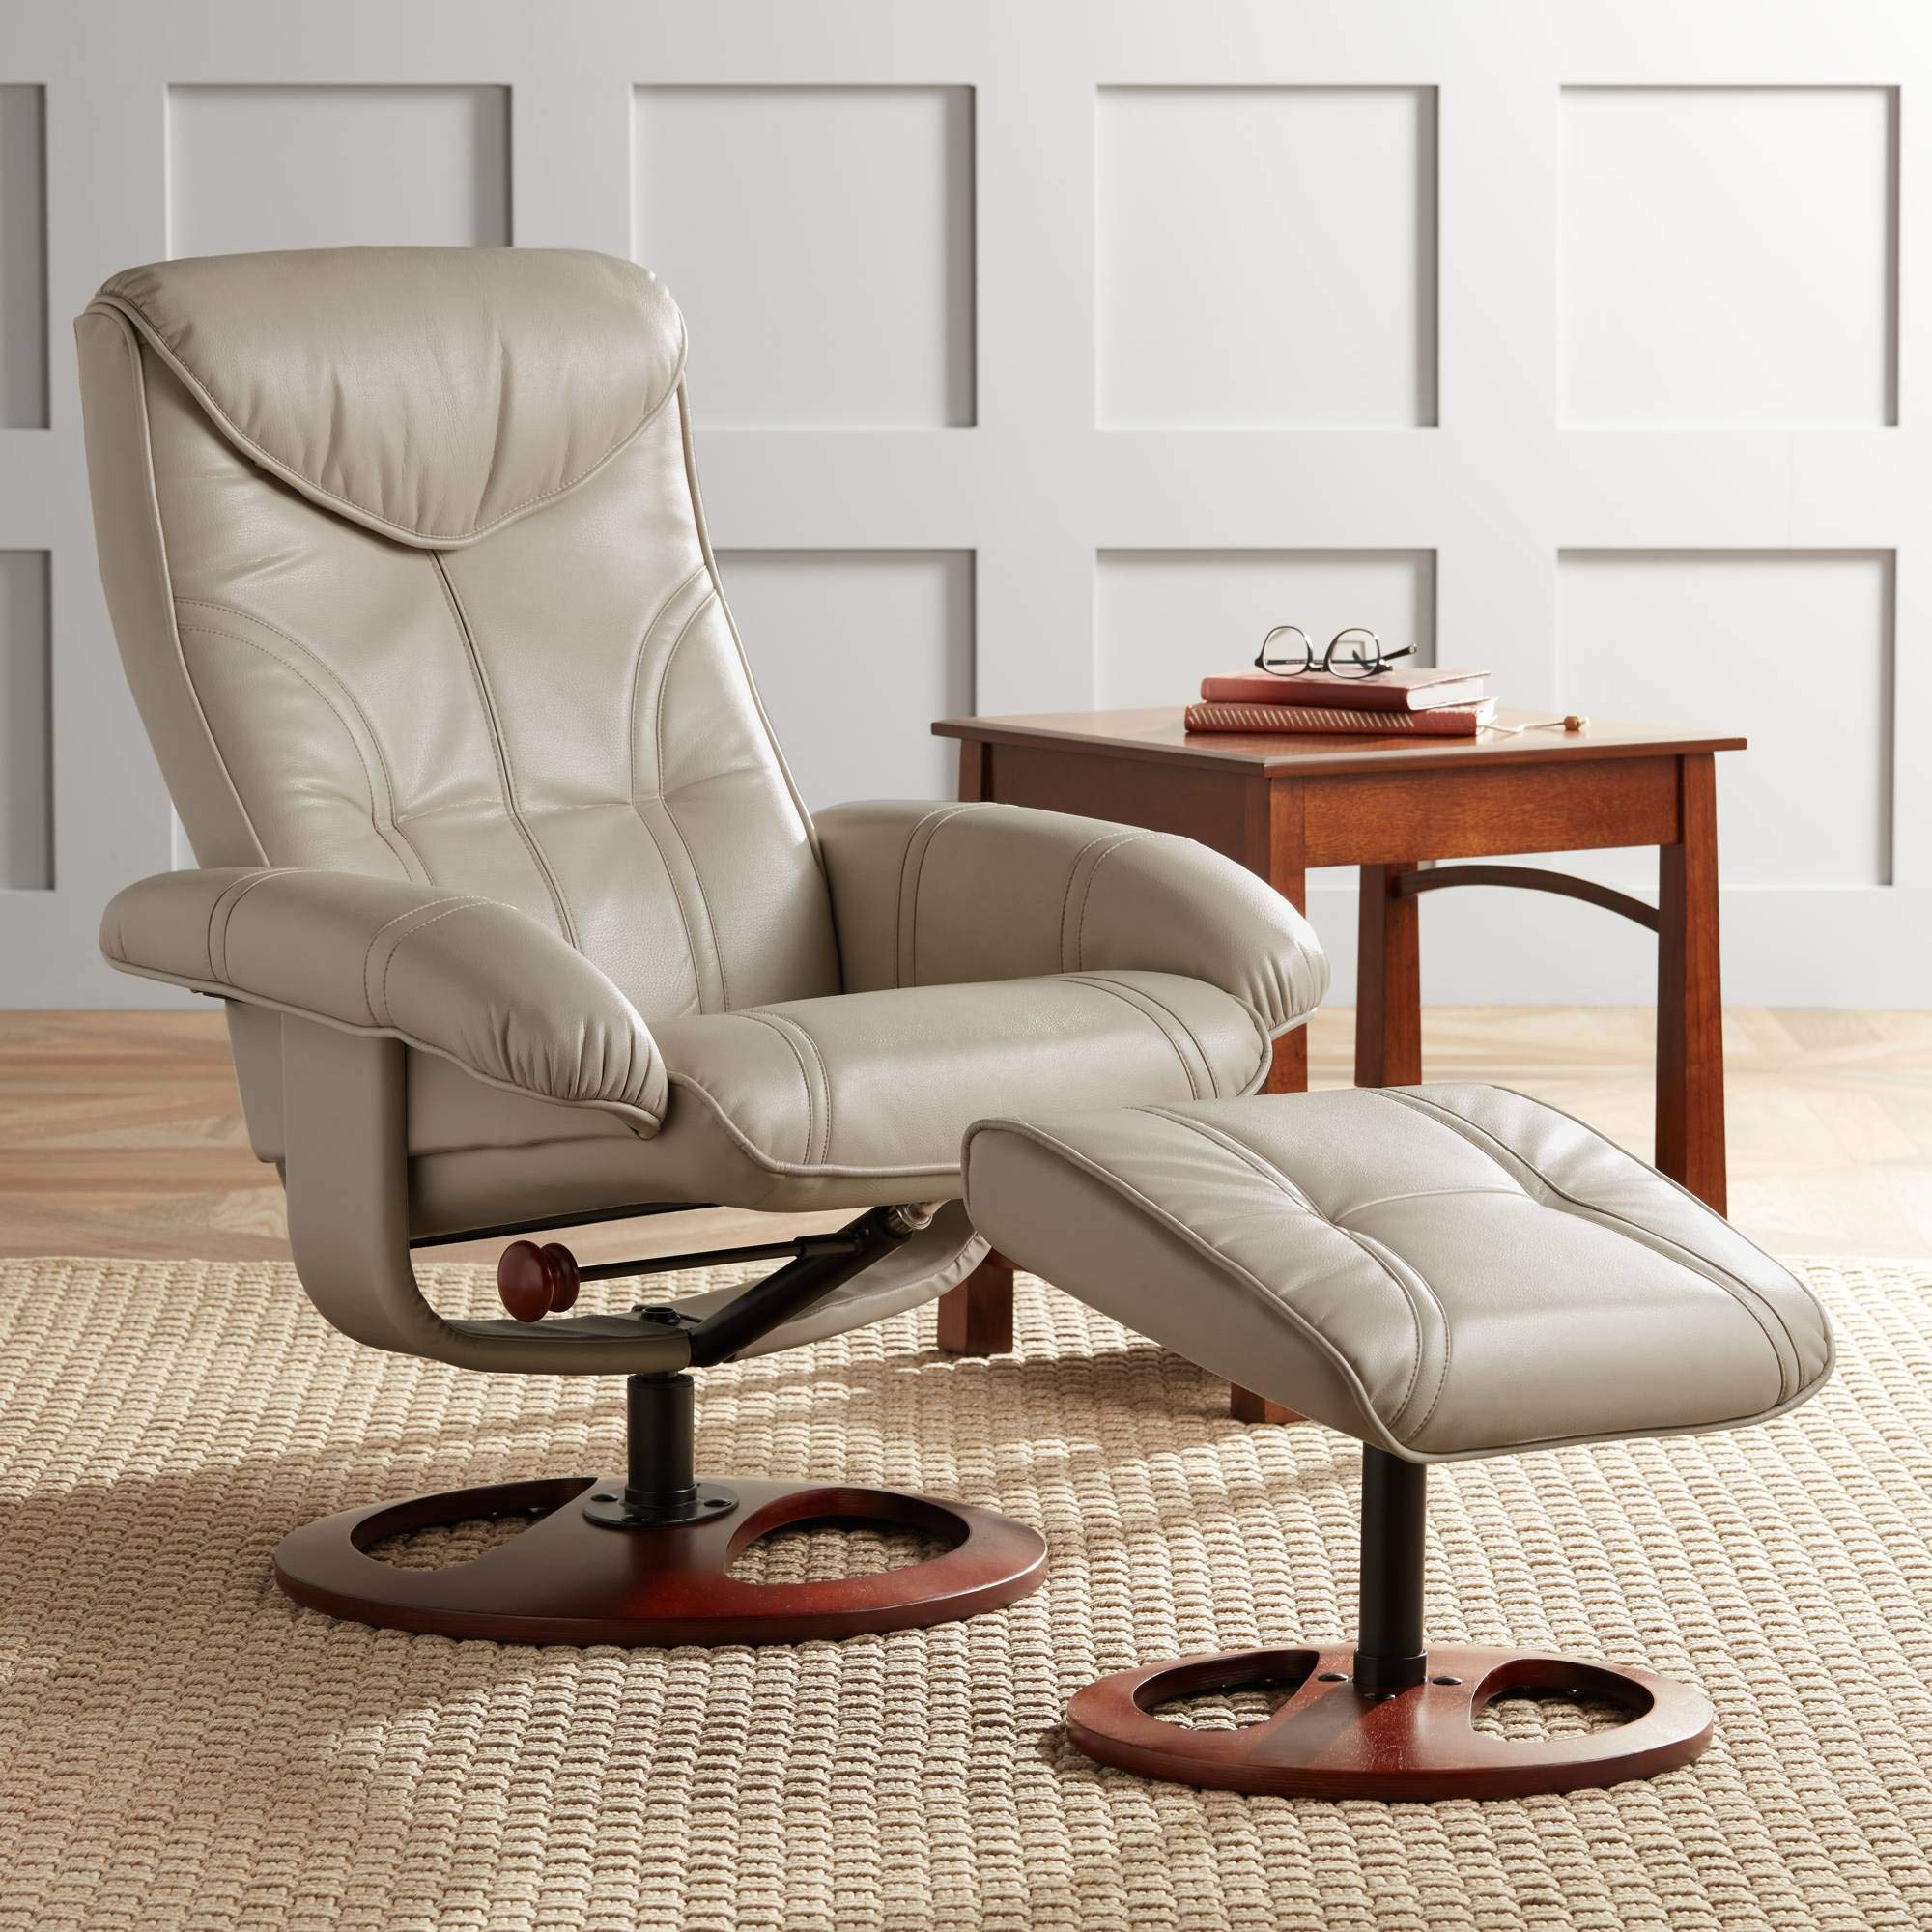 Newport Taupe Swivel Recliner and Slanted Ottoman by BenchMaster